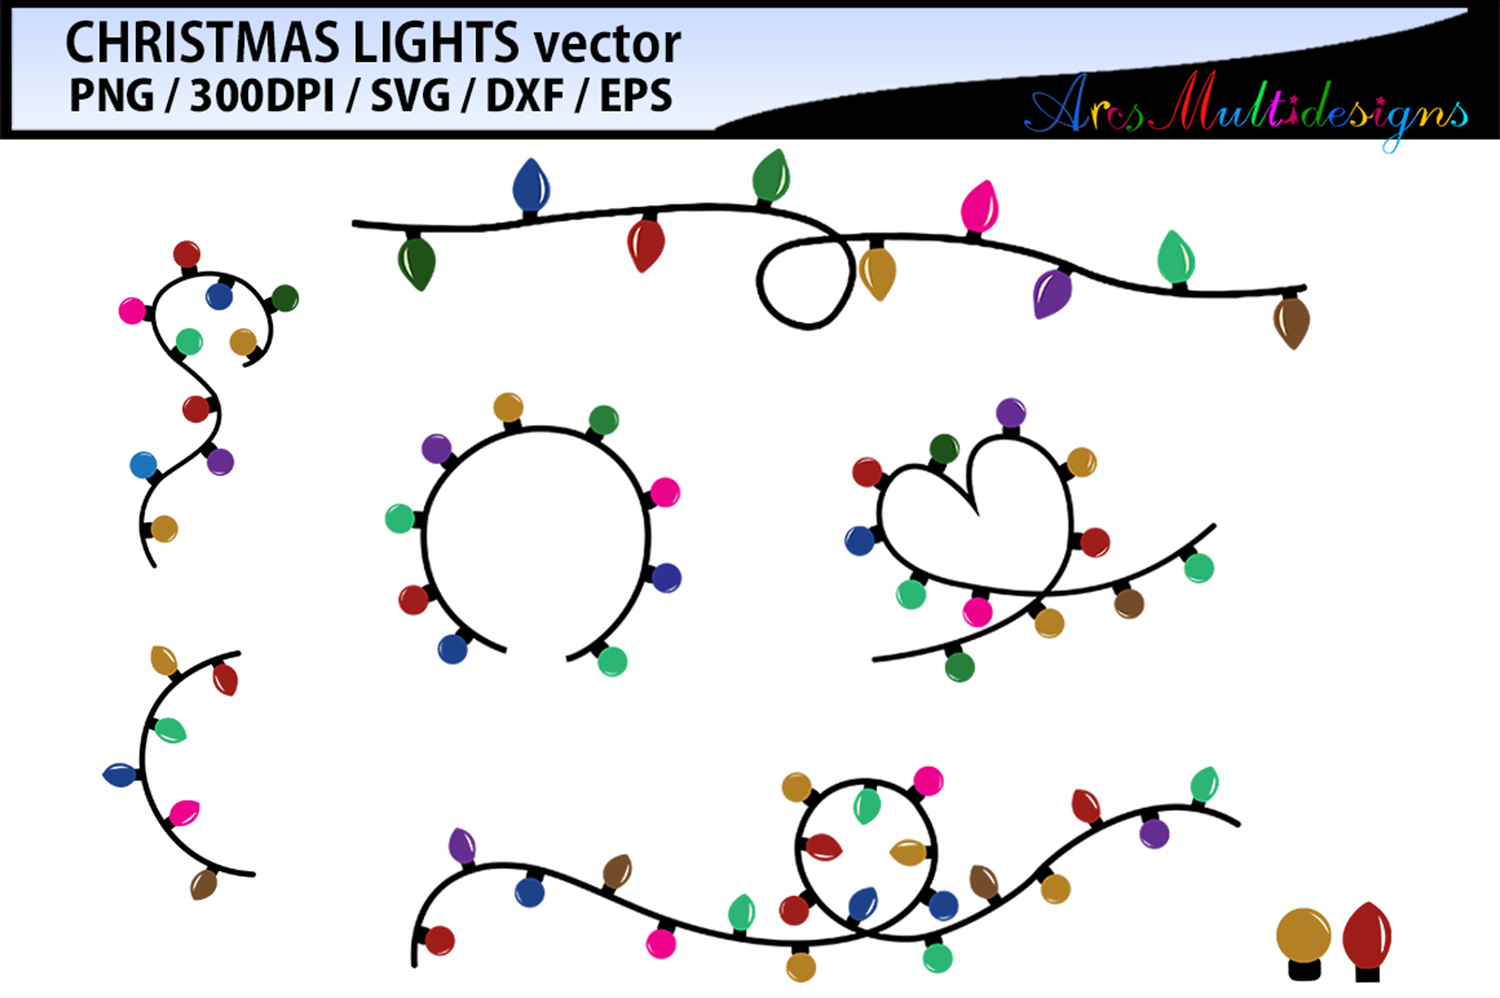 Download Free Christmas Light Vector Svg Vector Graphic By Arcs Multidesigns for Cricut Explore, Silhouette and other cutting machines.